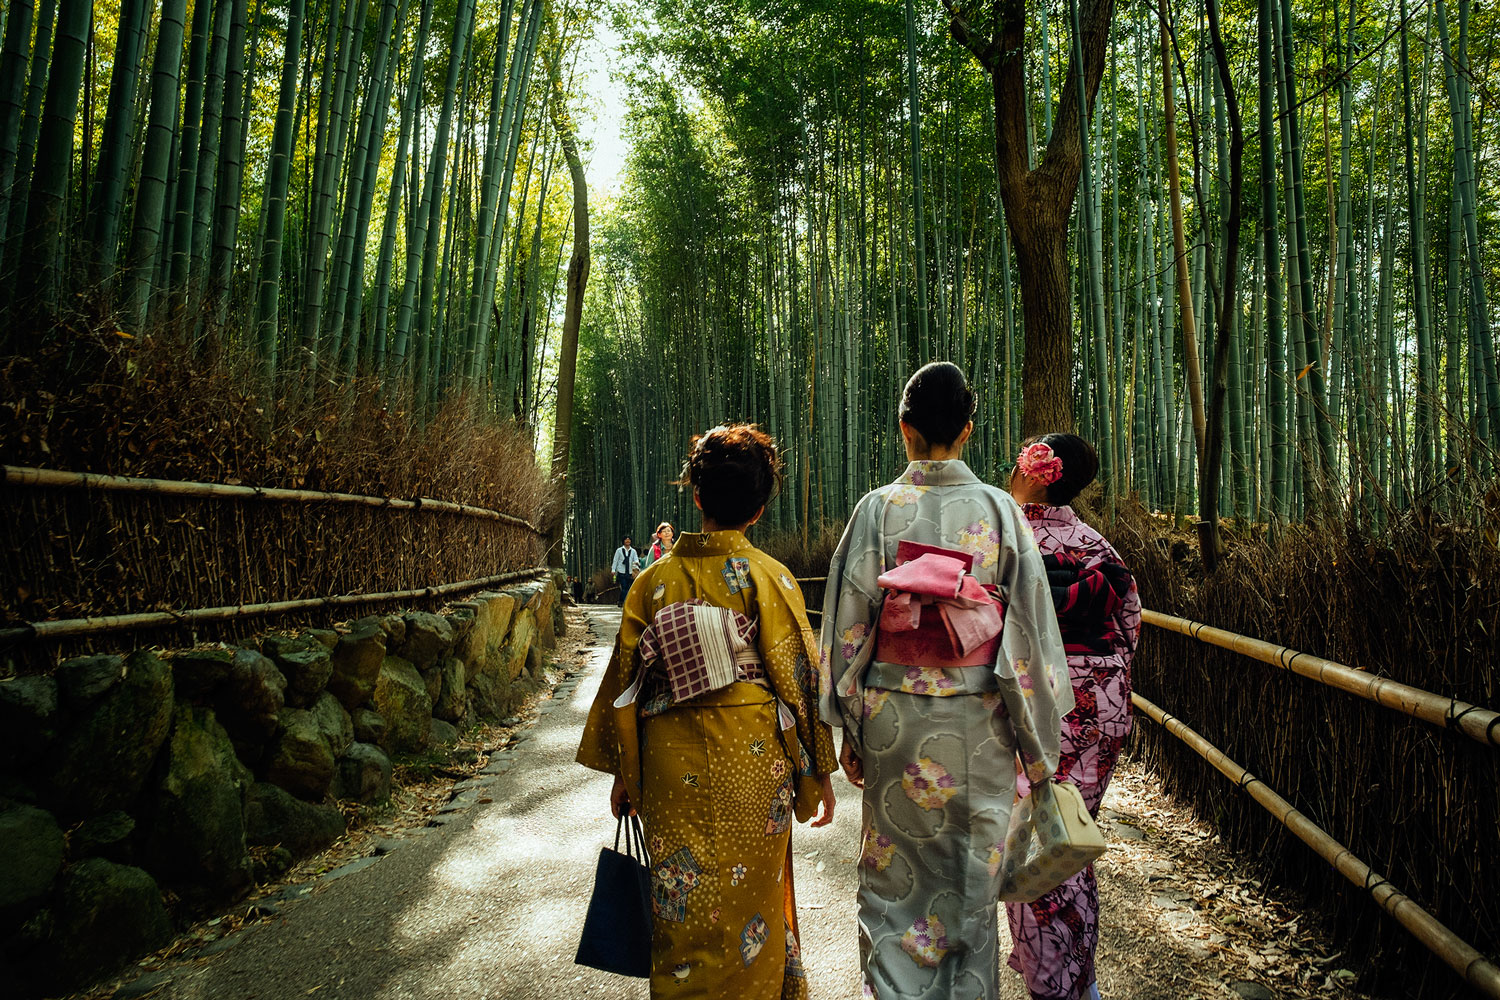 Some girls in kimonos strolling around Arashiyama